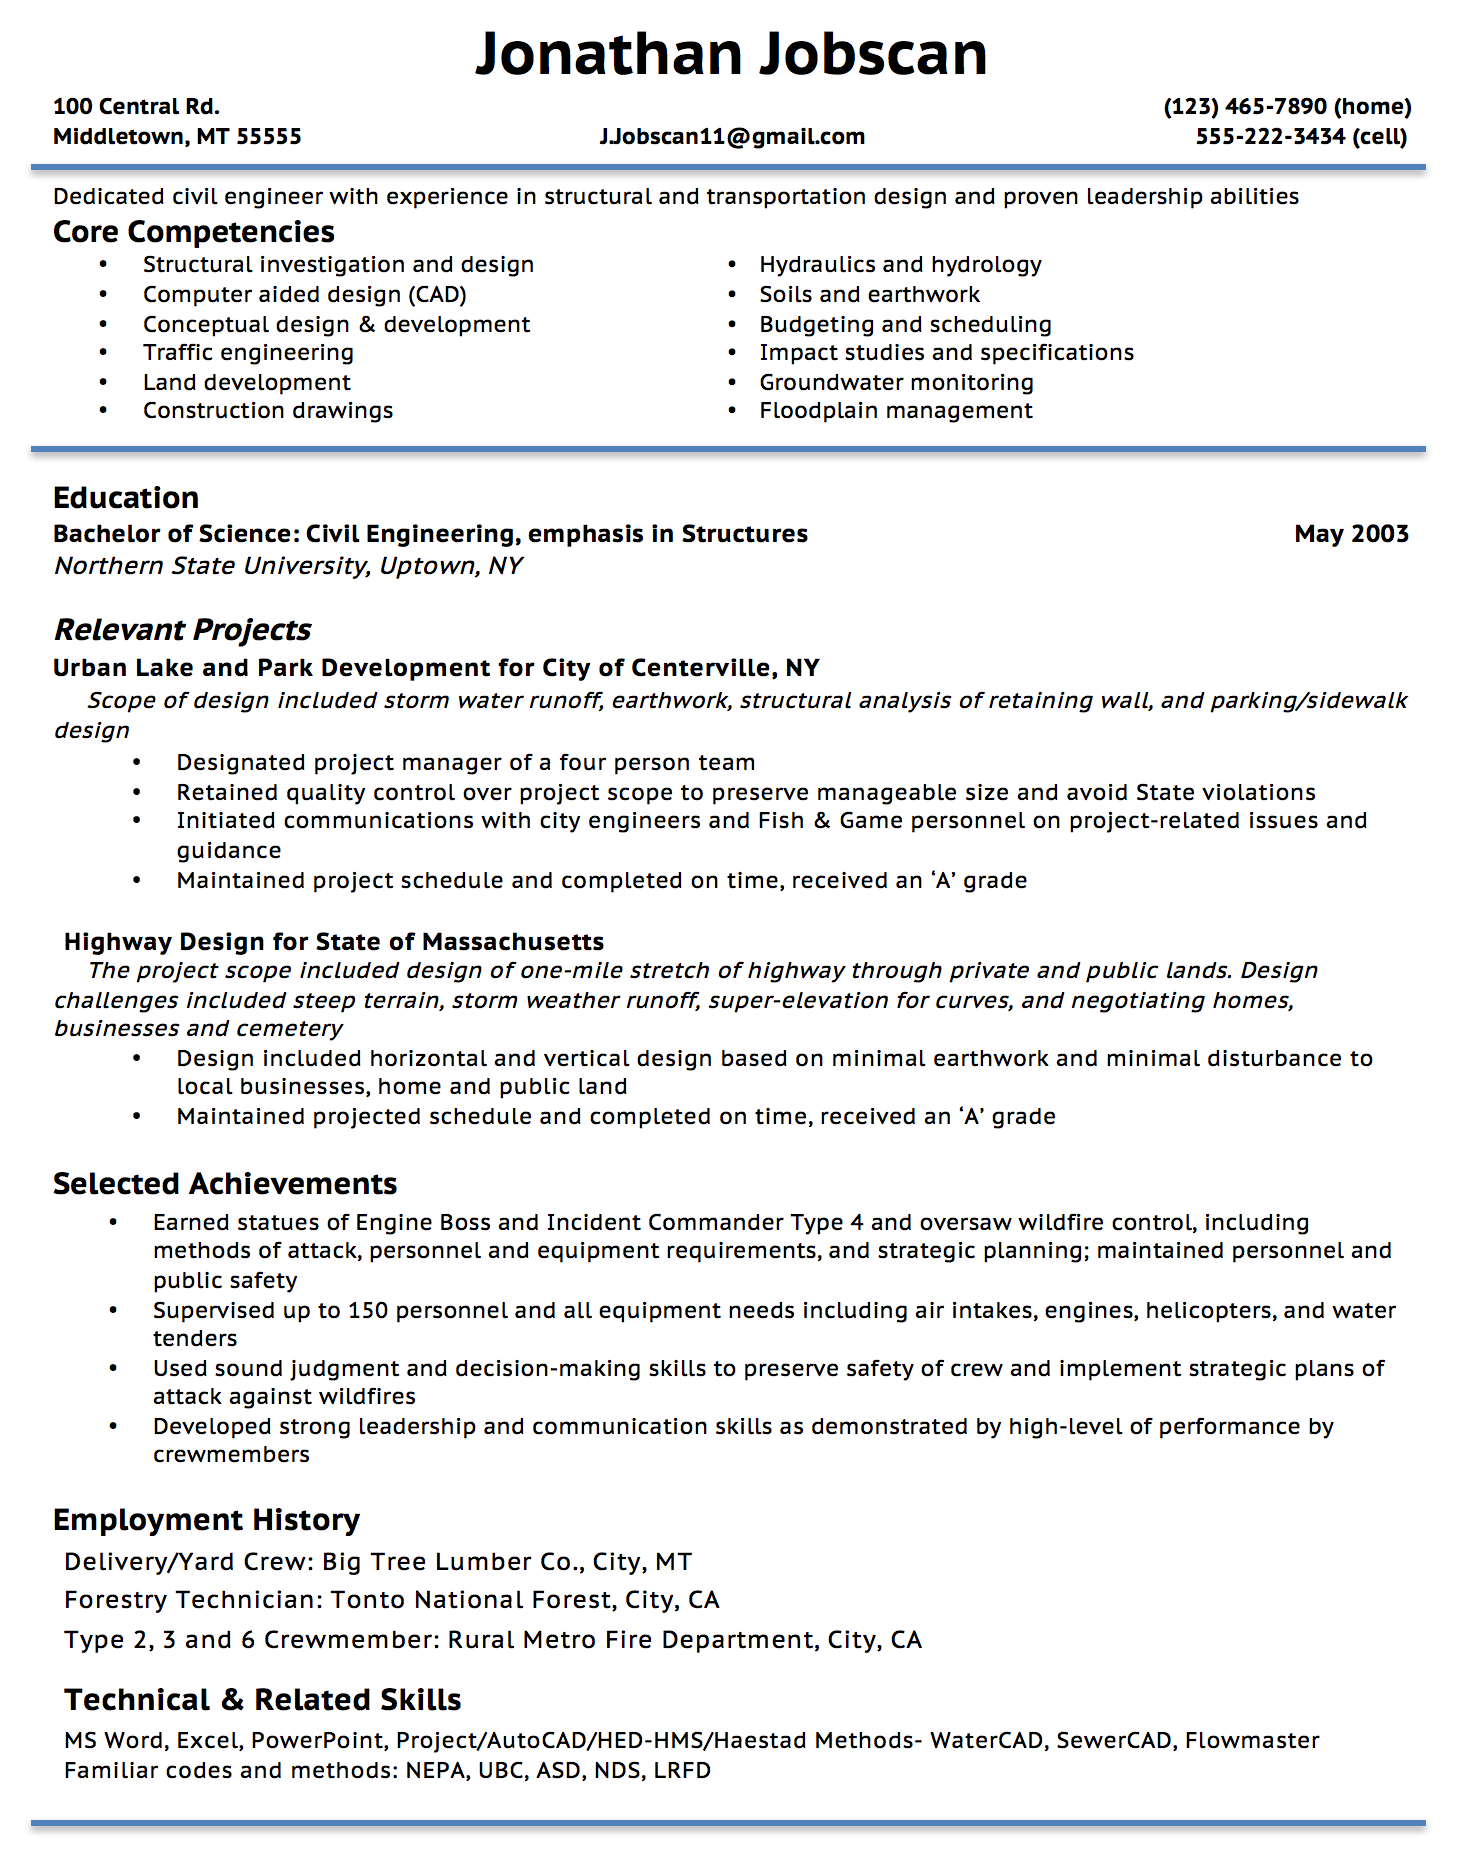 Opposenewapstandardsus  Terrific Resume Writing Guide  Jobscan With Fascinating Example Of A Functional Resume Format With Charming Retail Pharmacist Resume Also Relevant Skills For Resume In Addition Work Resume Format And Receptionist Skills Resume As Well As How To Write A Nursing Resume Additionally Merchandising Resume From Jobscanco With Opposenewapstandardsus  Fascinating Resume Writing Guide  Jobscan With Charming Example Of A Functional Resume Format And Terrific Retail Pharmacist Resume Also Relevant Skills For Resume In Addition Work Resume Format From Jobscanco